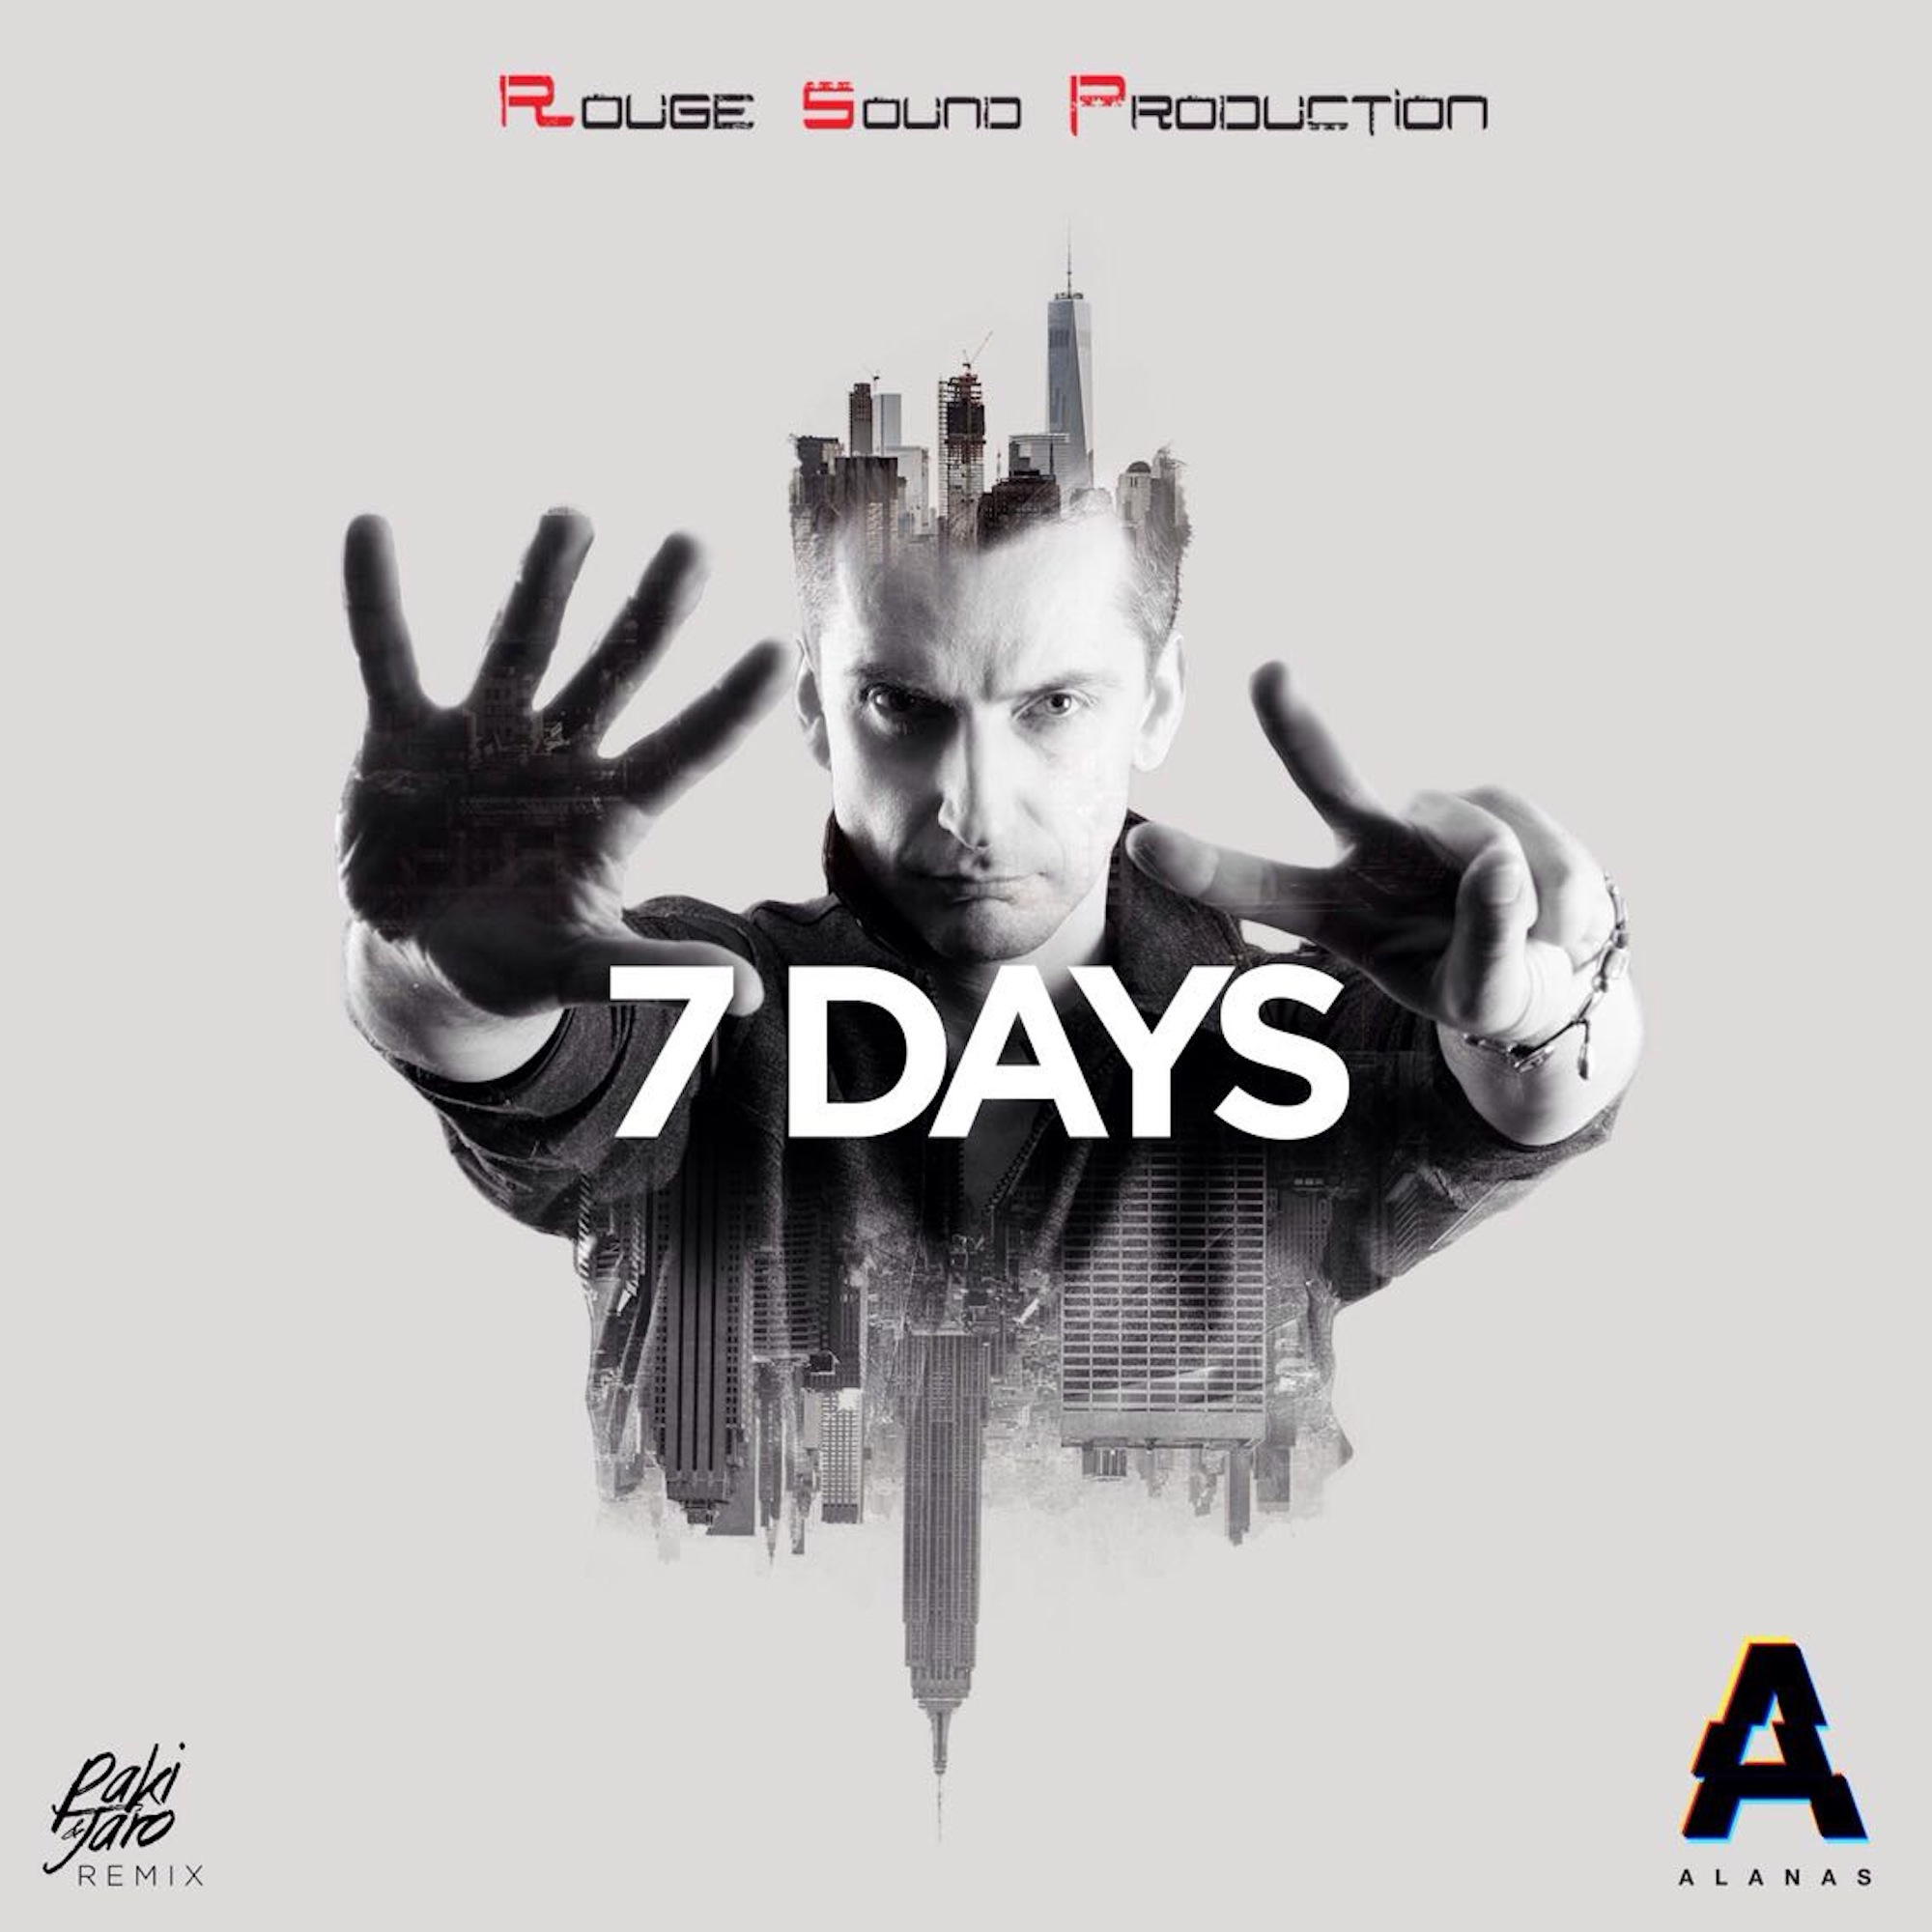 ALANAS 7 DAYS EUROVISION BY ROUGE SOUND PRODCUTION OF MARCO LO RUSSO